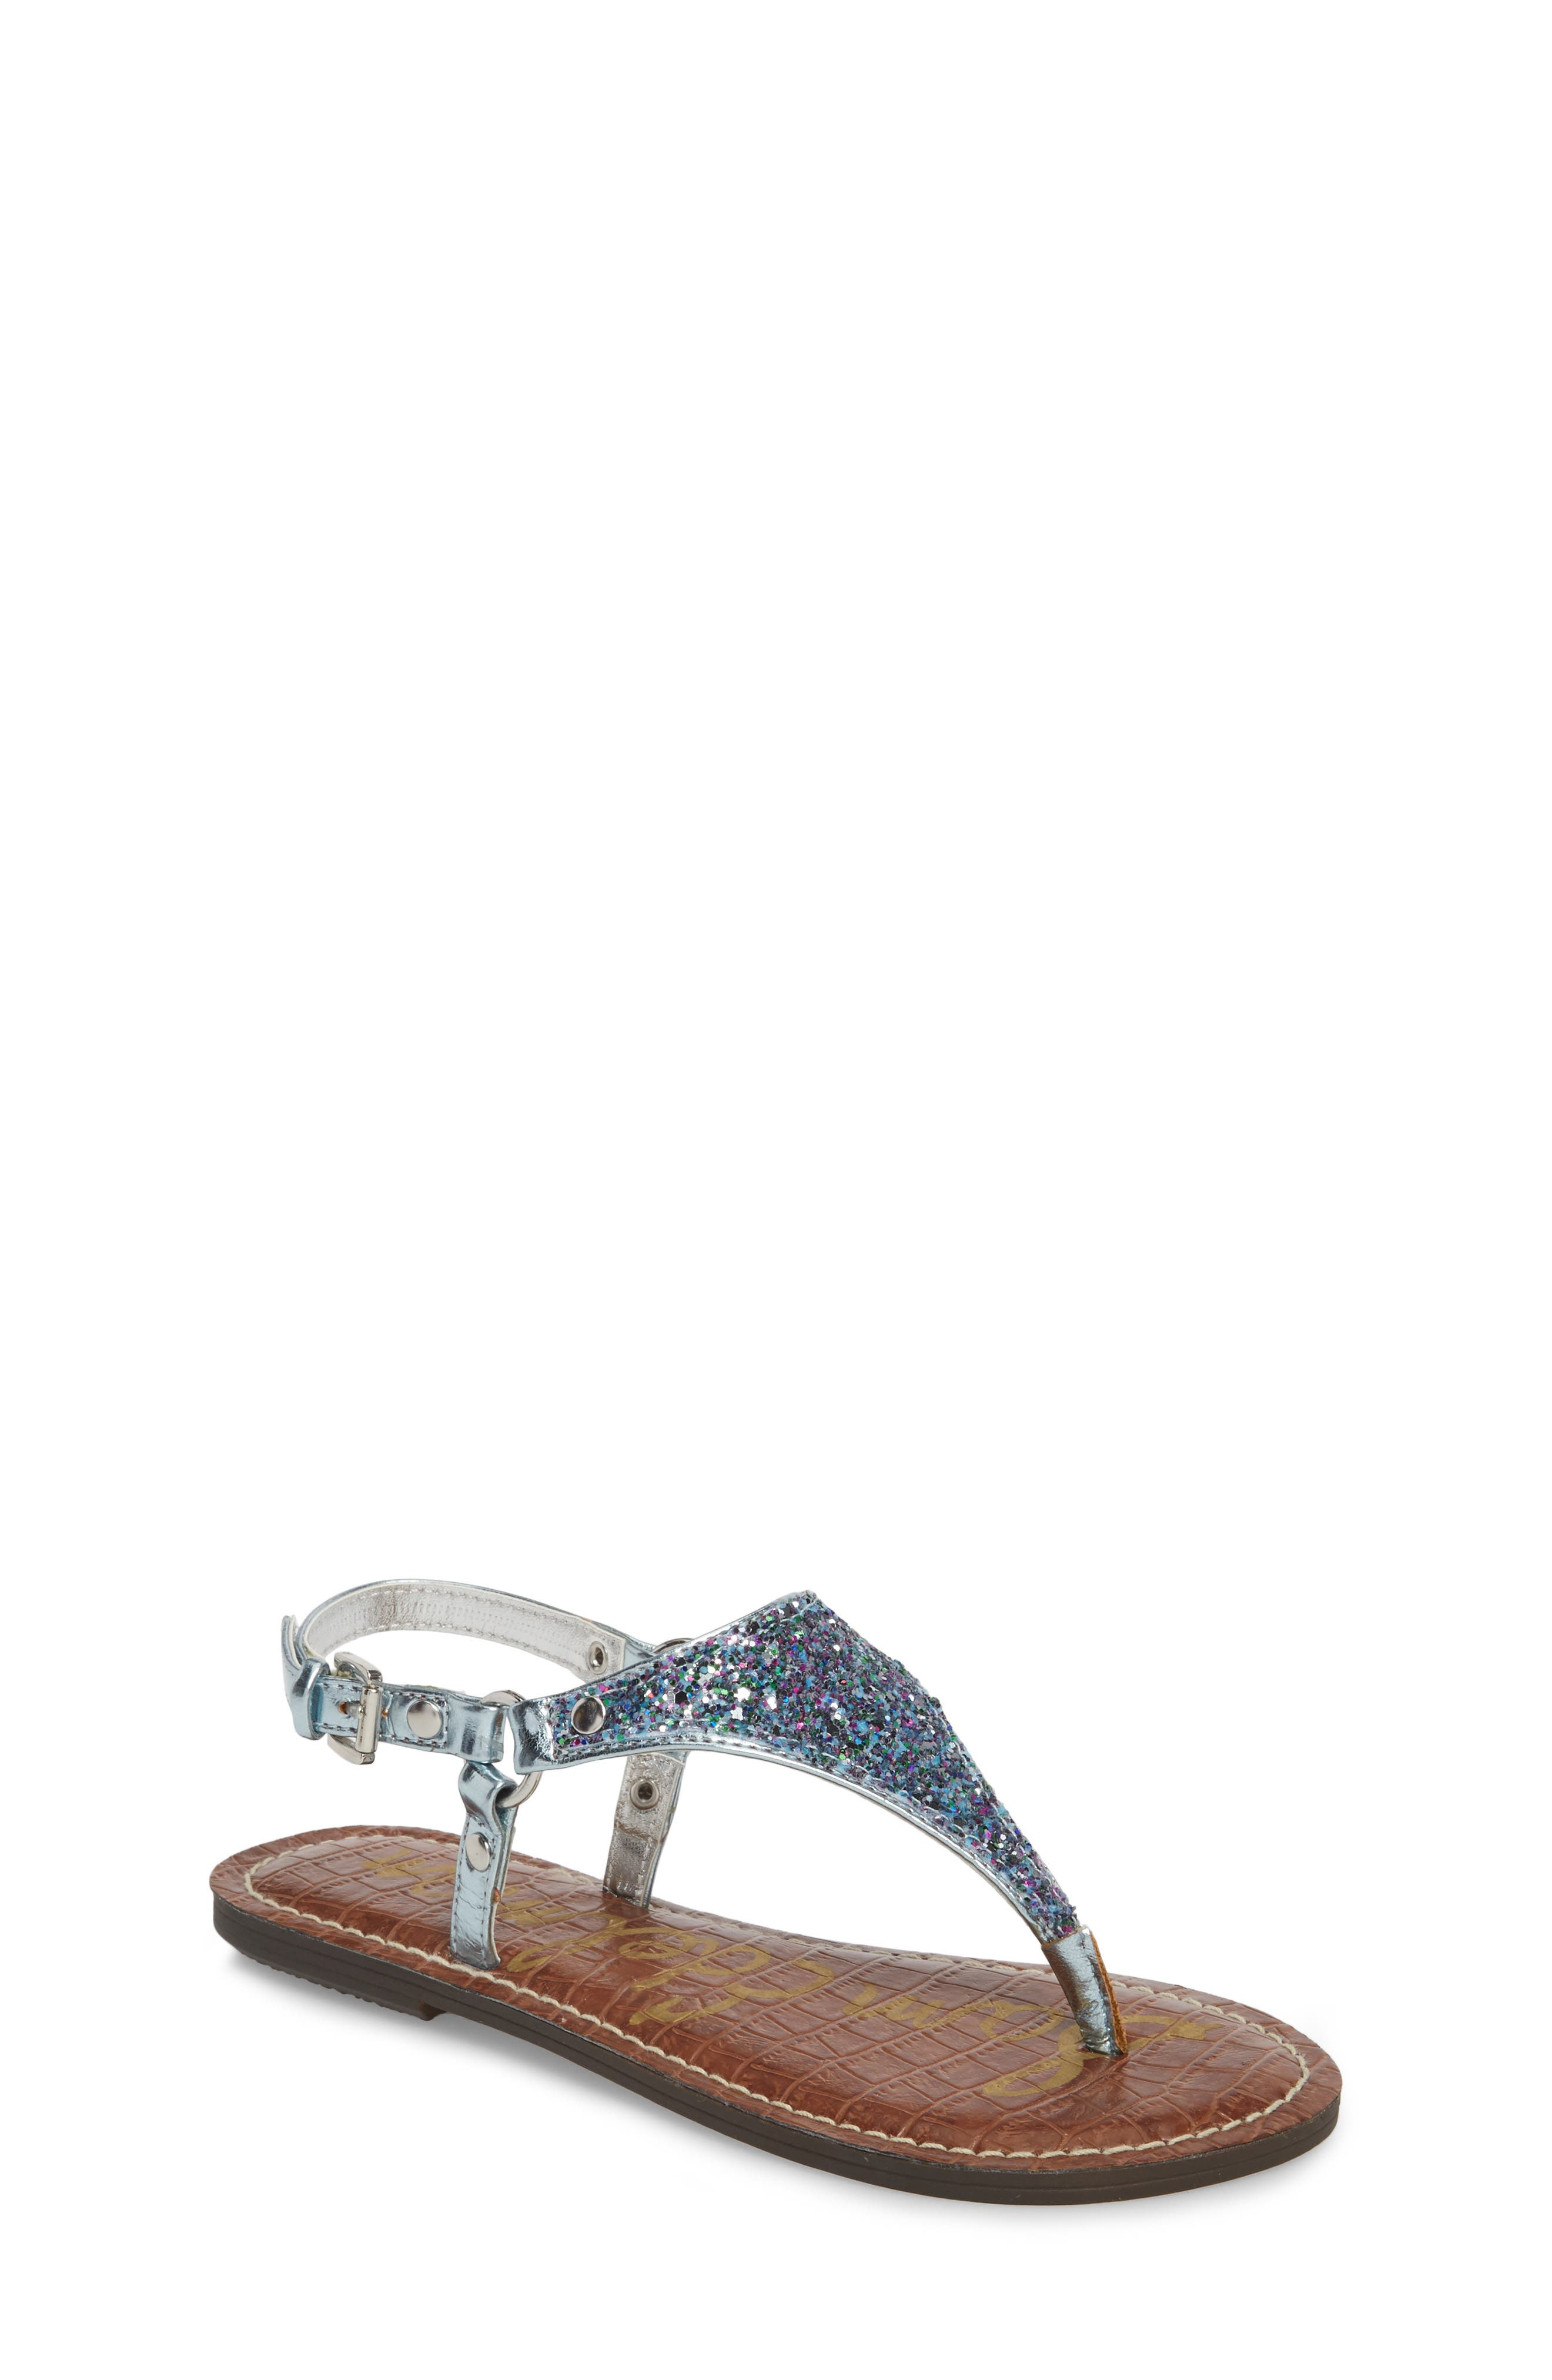 Sam Edelman Gigi Greta Sandal (Toddler, Little Kid & Big Kid)